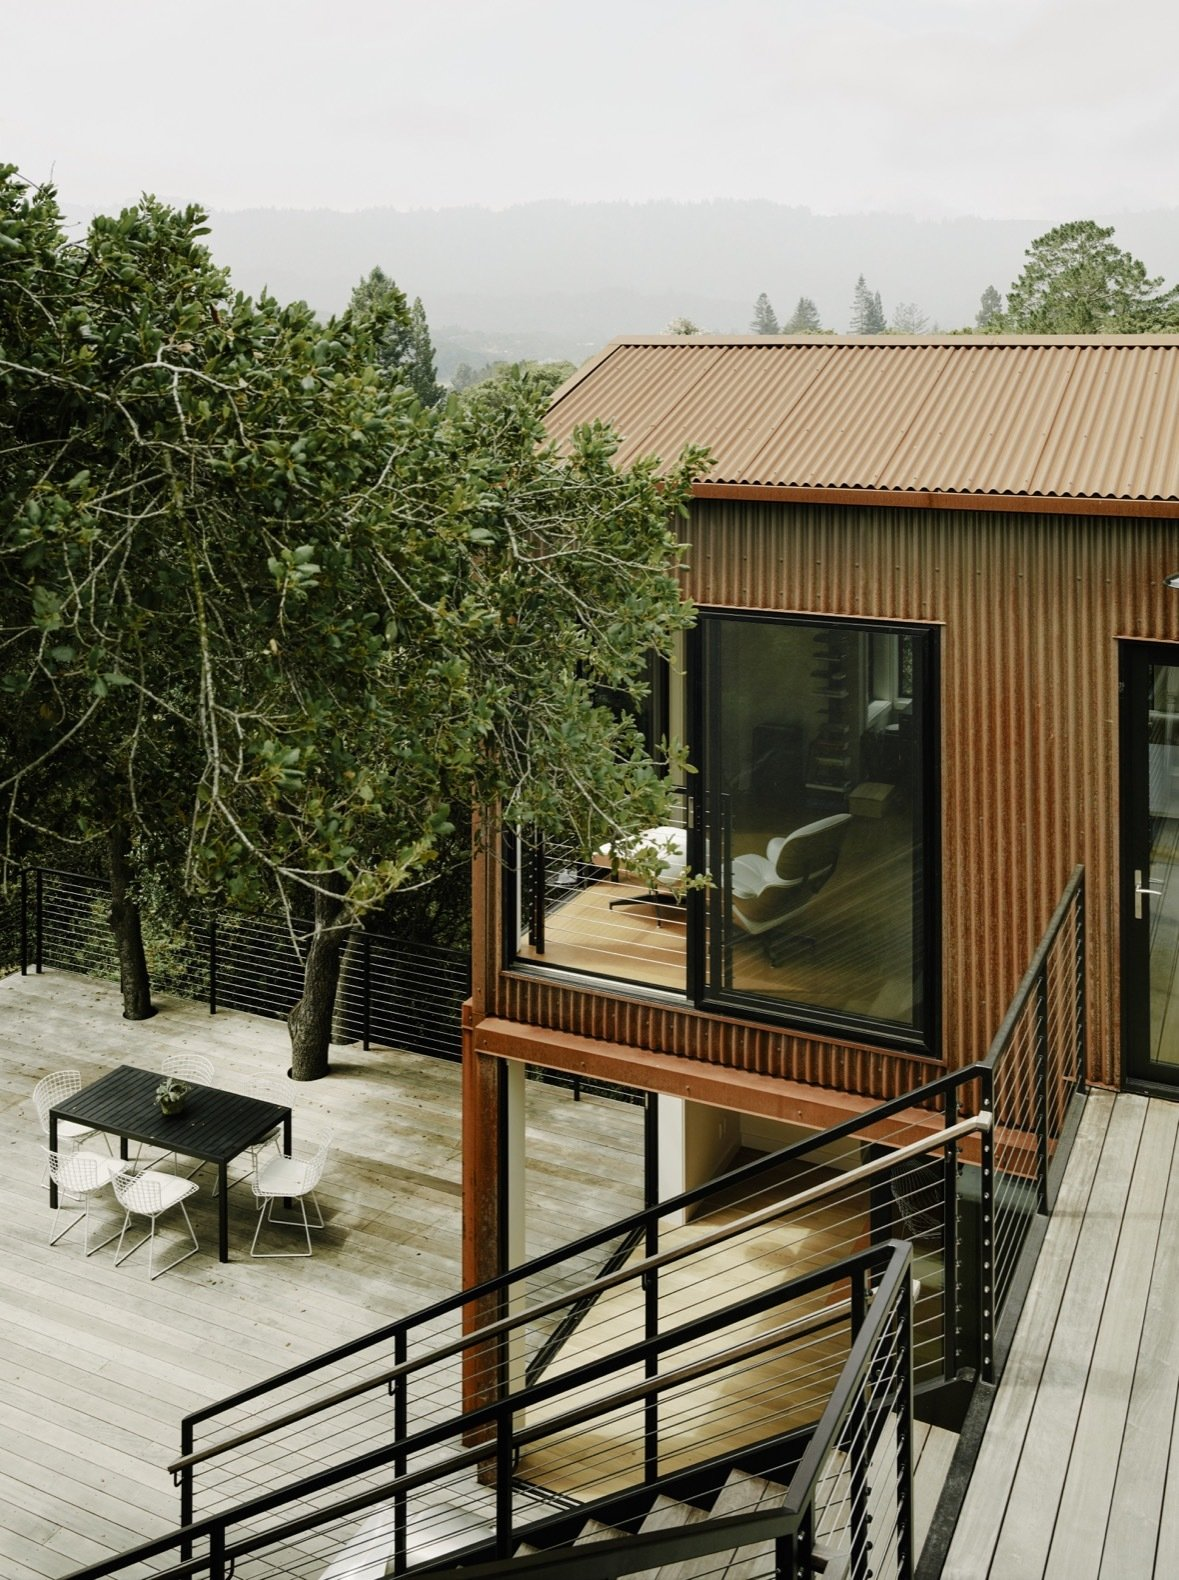 Portola Valley House annex exterior